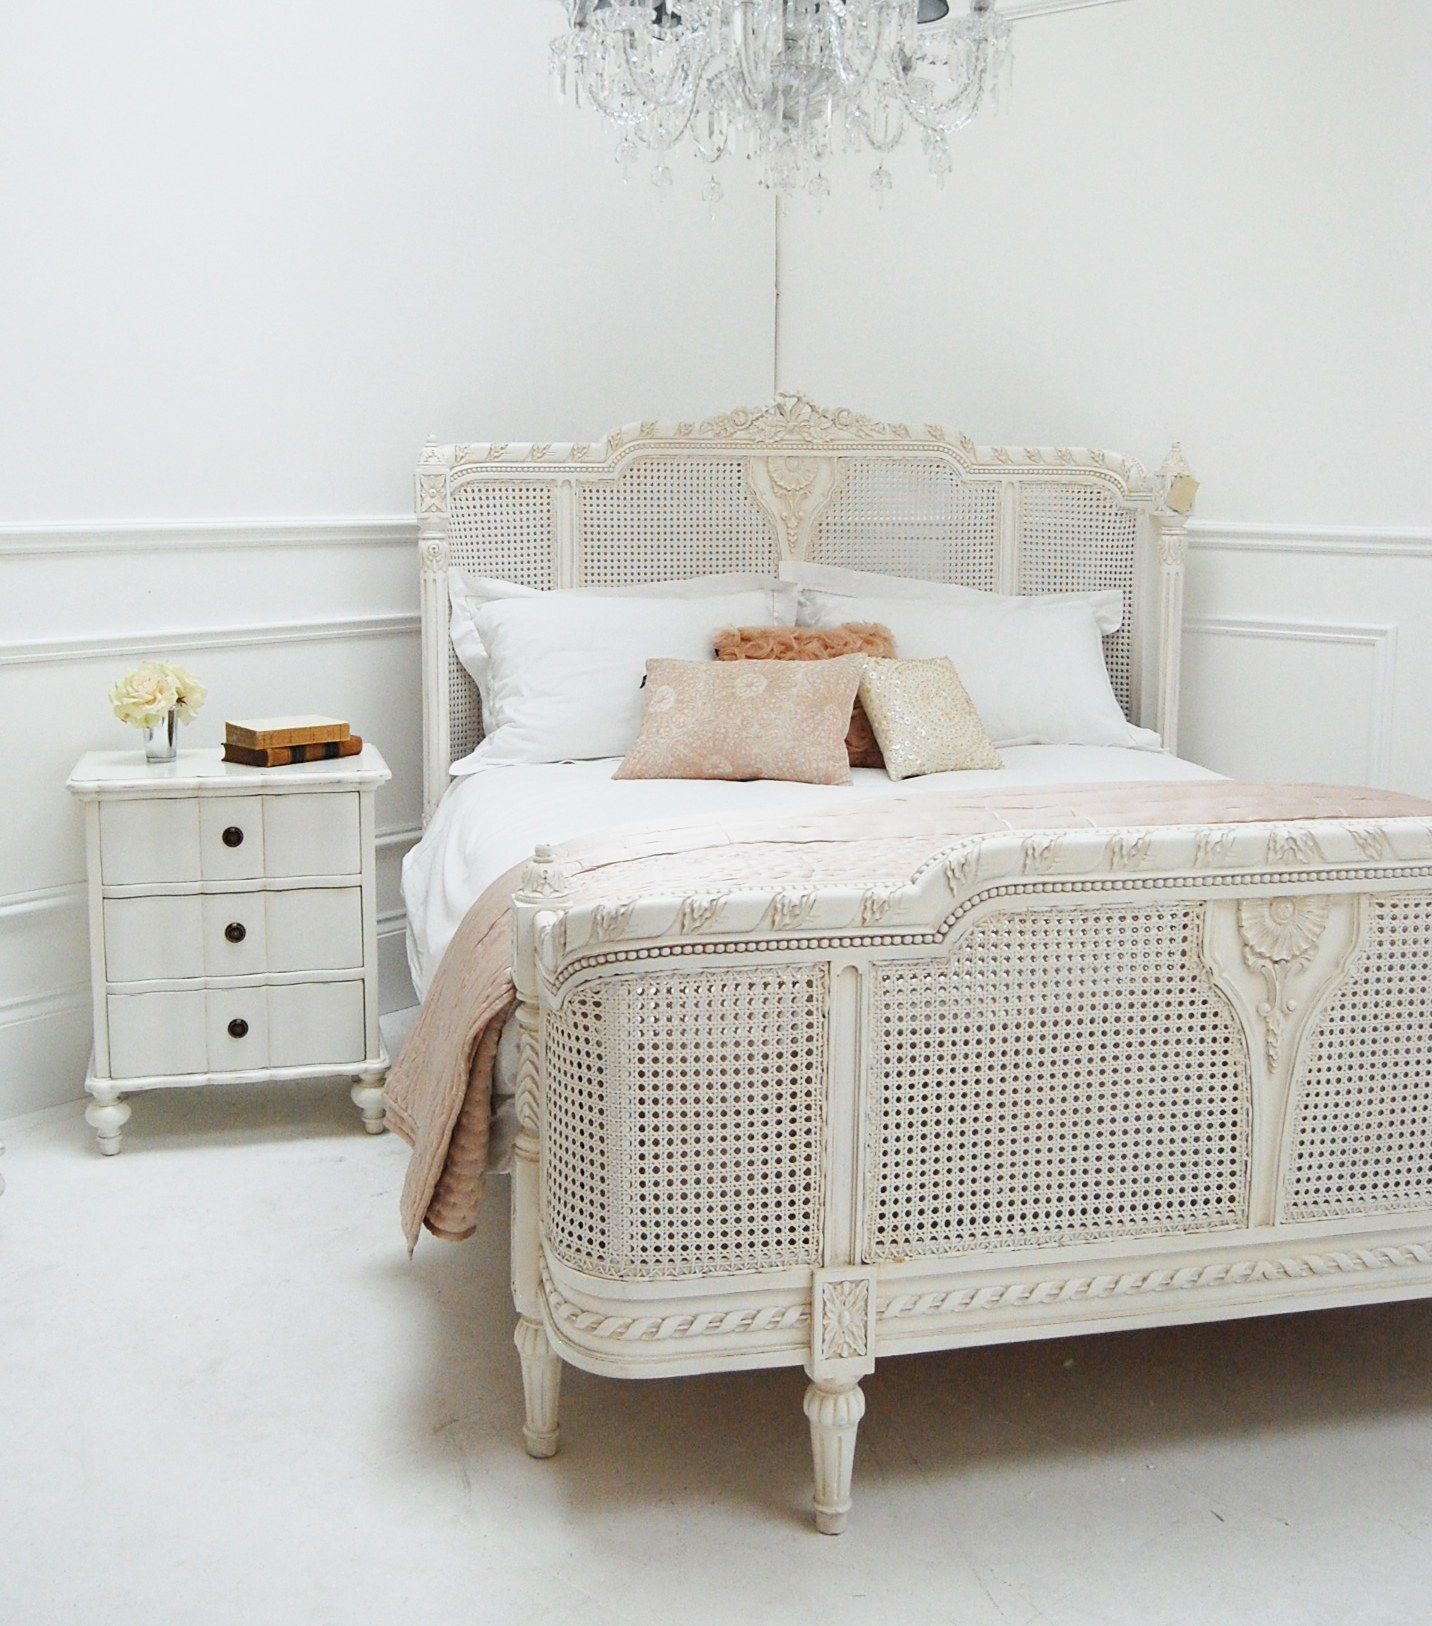 Classical White Valencia Bed Sweetpea & Willow London in